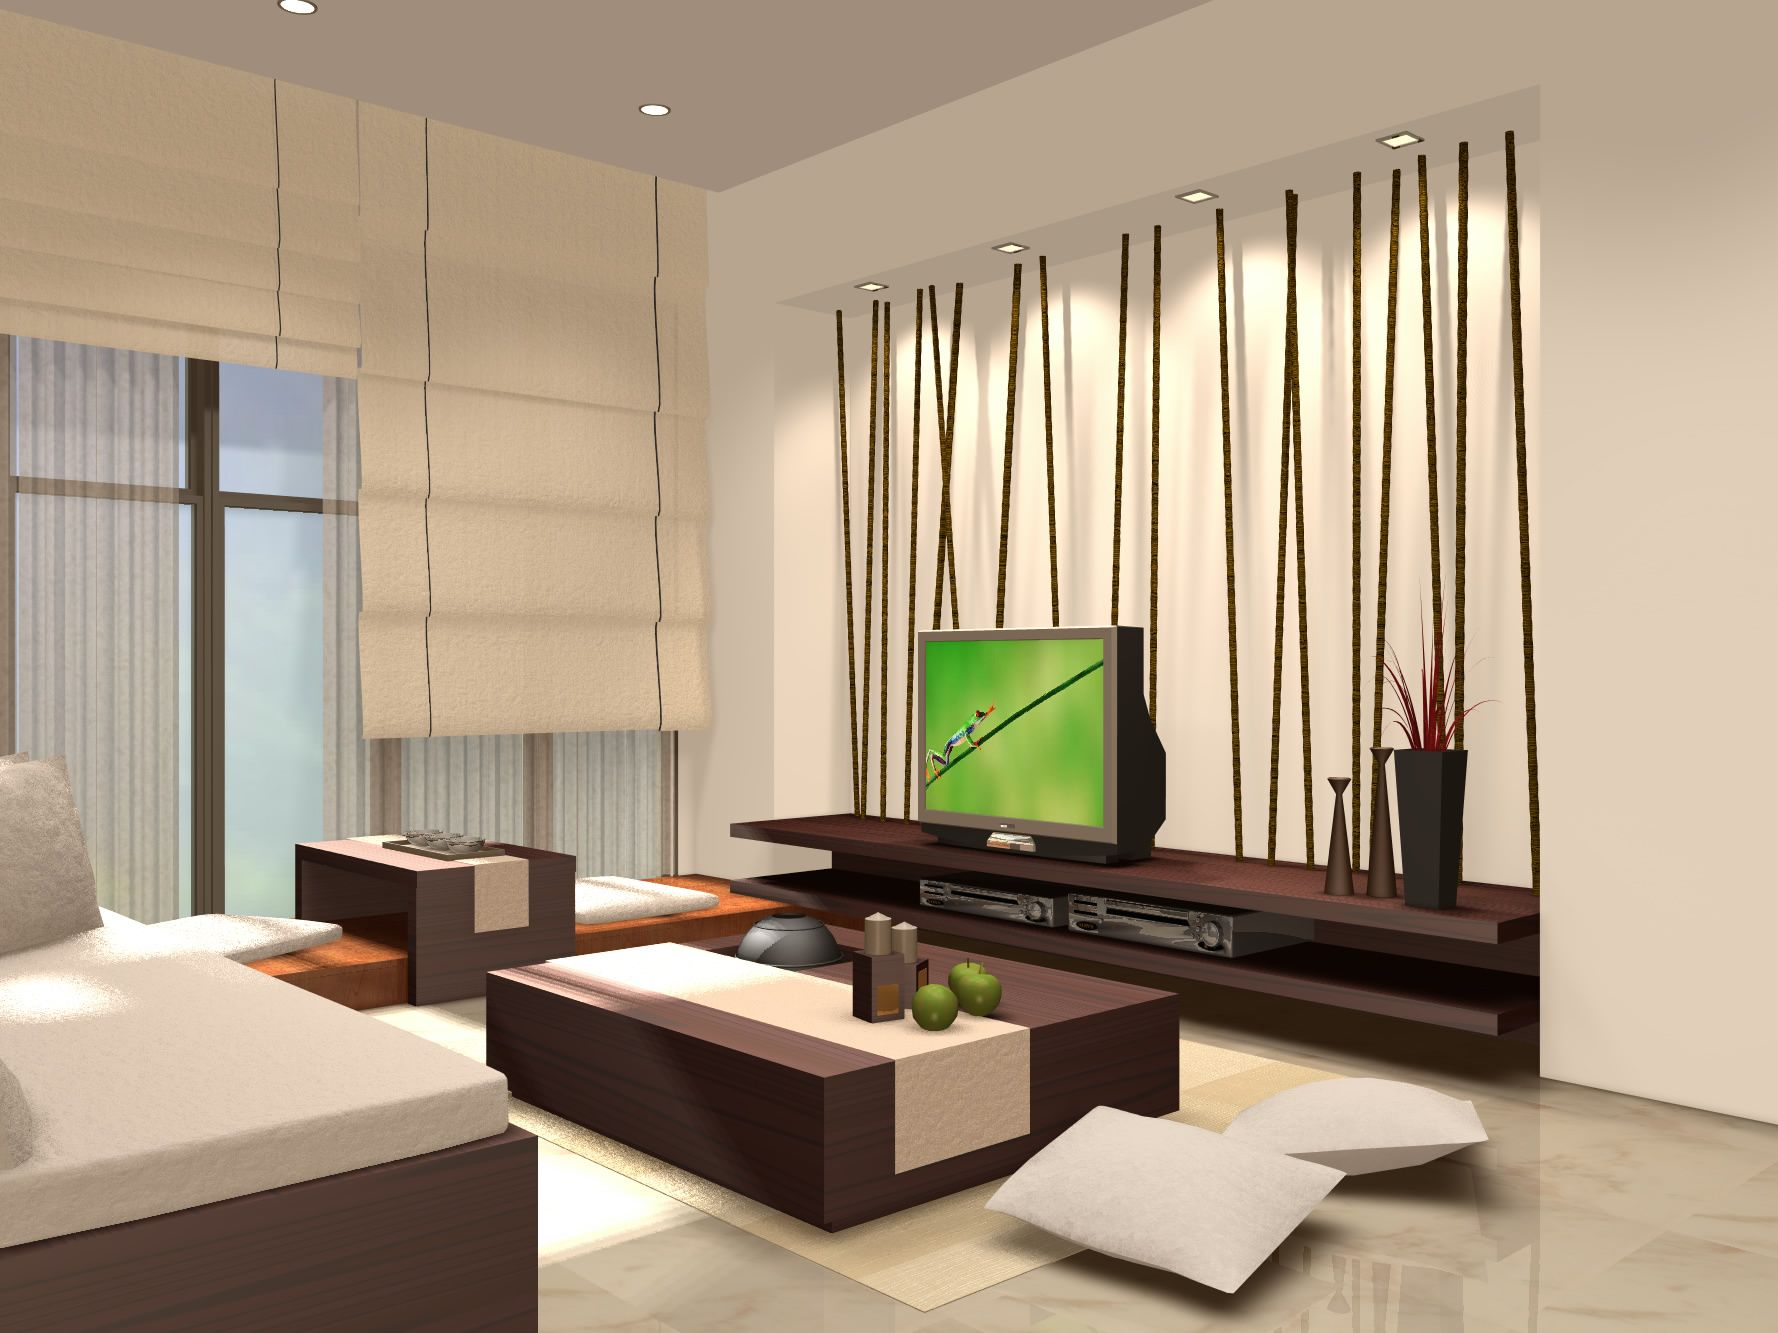 Living Room Design Styles Stunning Hollywood Moderne Interior Design Style  Home Interior Design Decorating Design